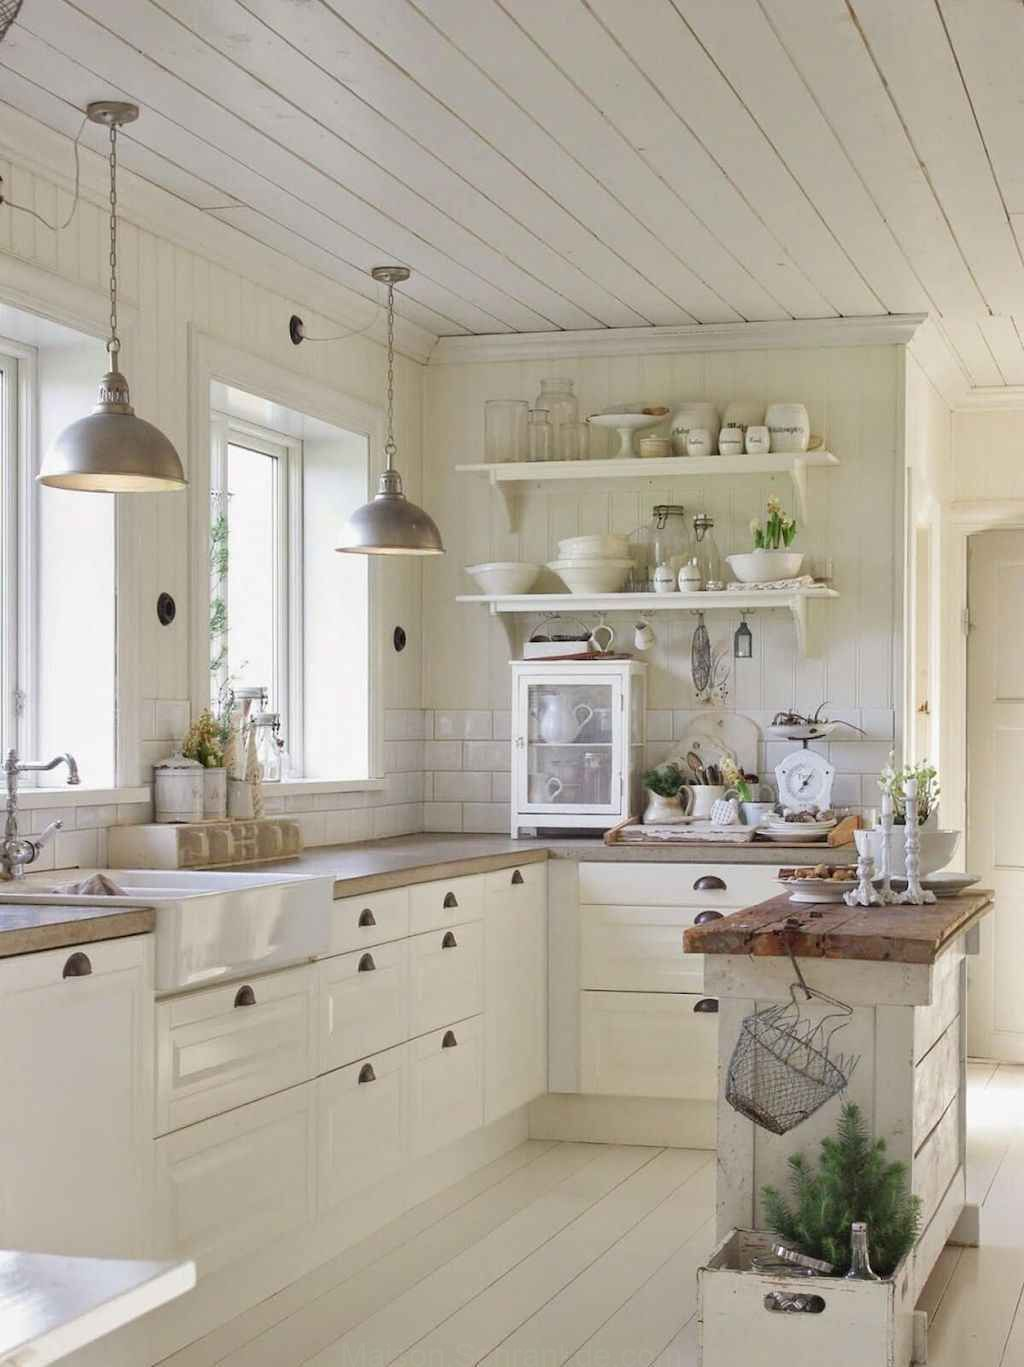 01 Belle Cuisine Francaise Decor Idees Kitchen Remodel Small Kitchen Design Small Country Kitchen Designs